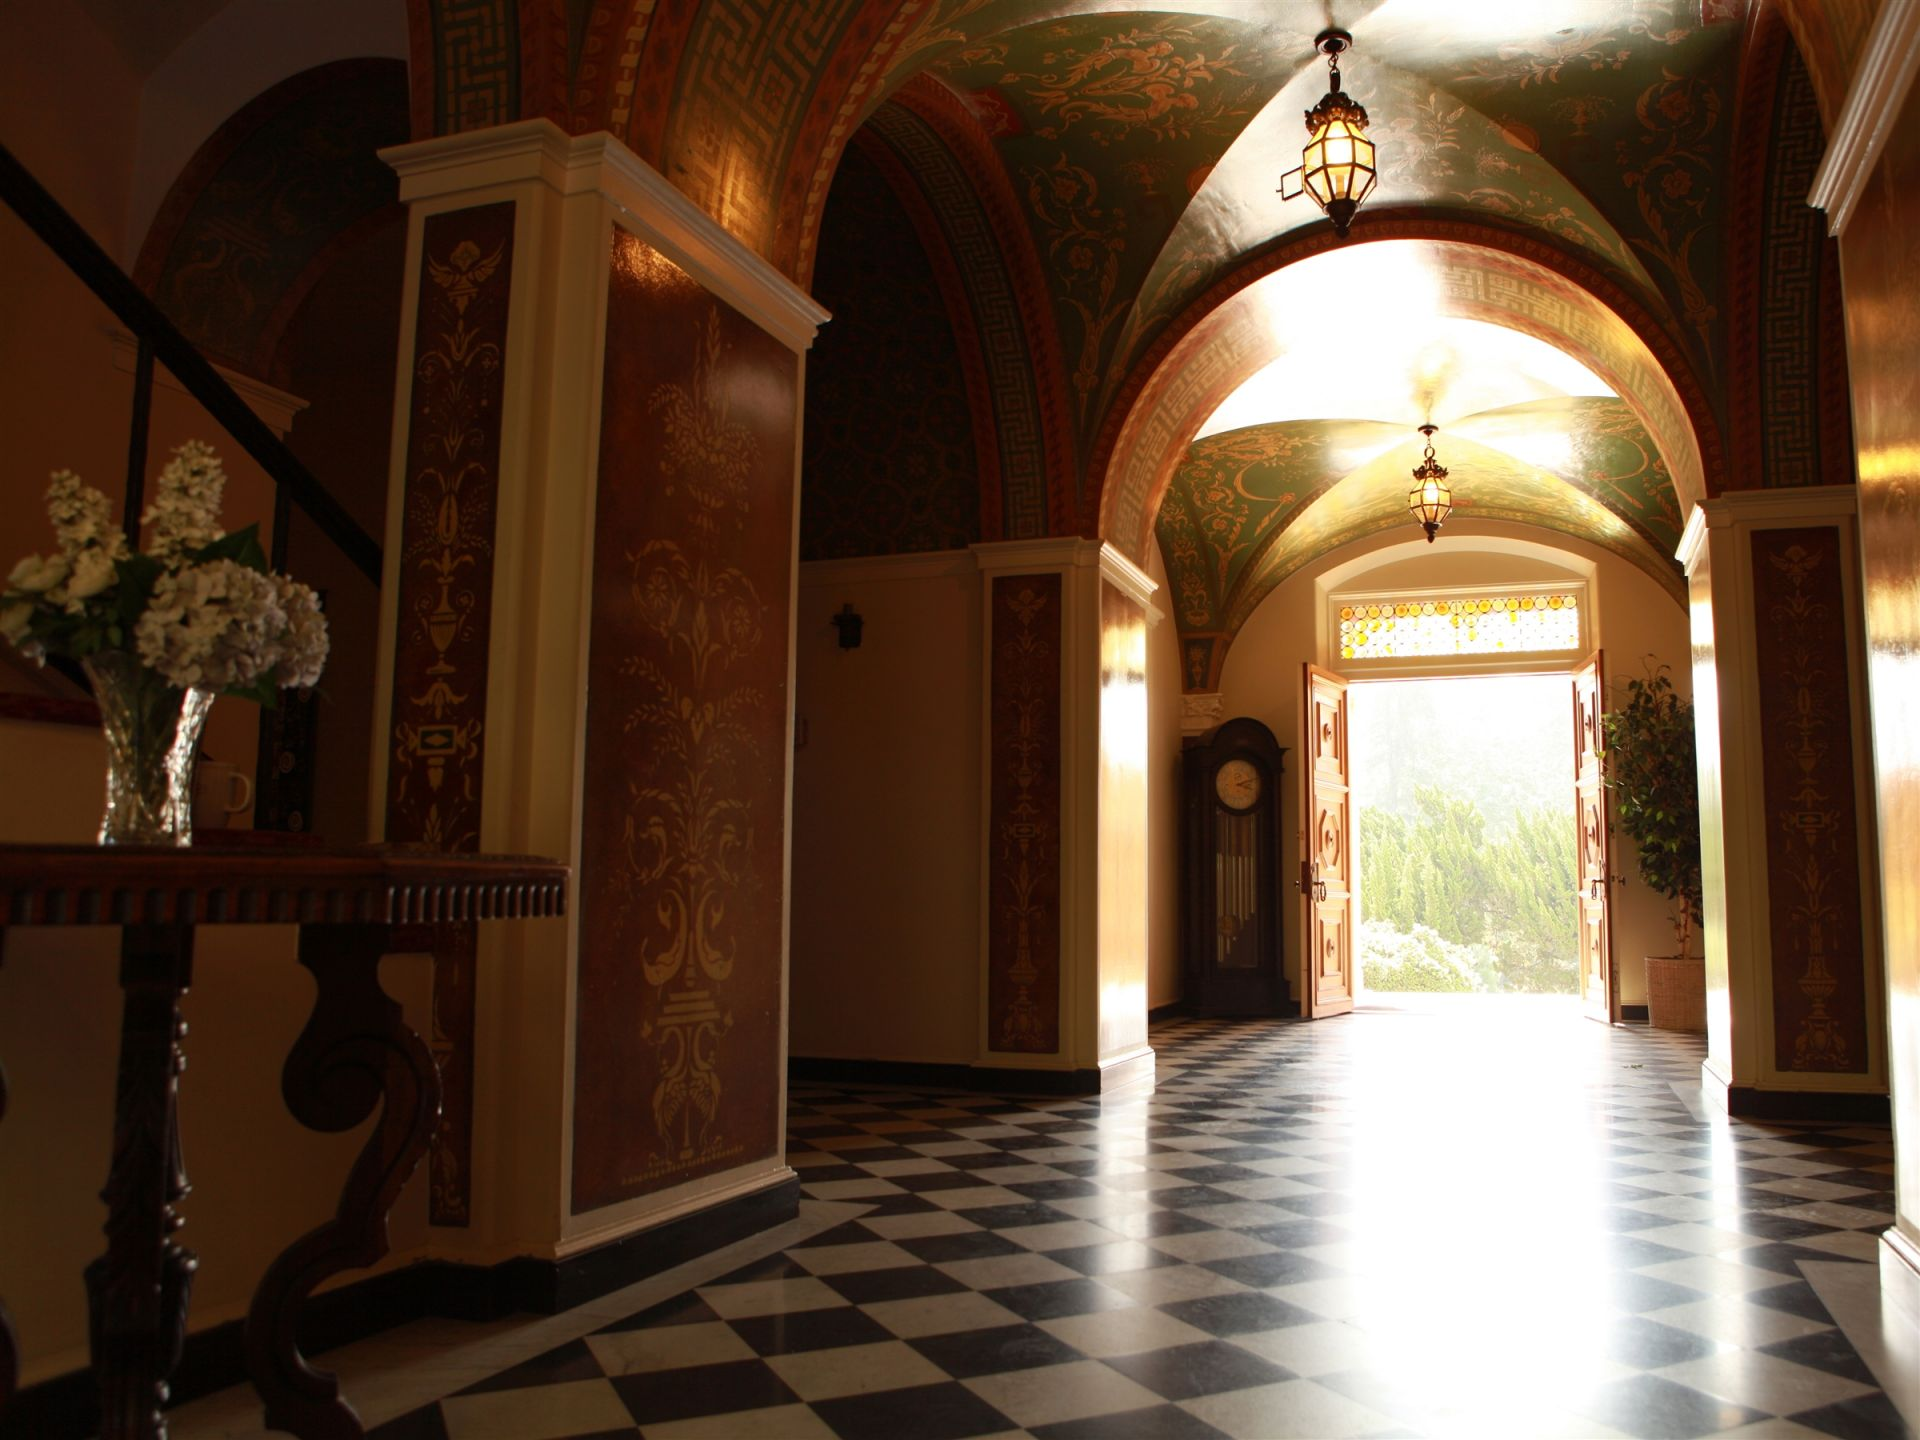 Inside the foyer, the architectural masterpiece is highlighted by beautiful hand-painted walls and ceilings.